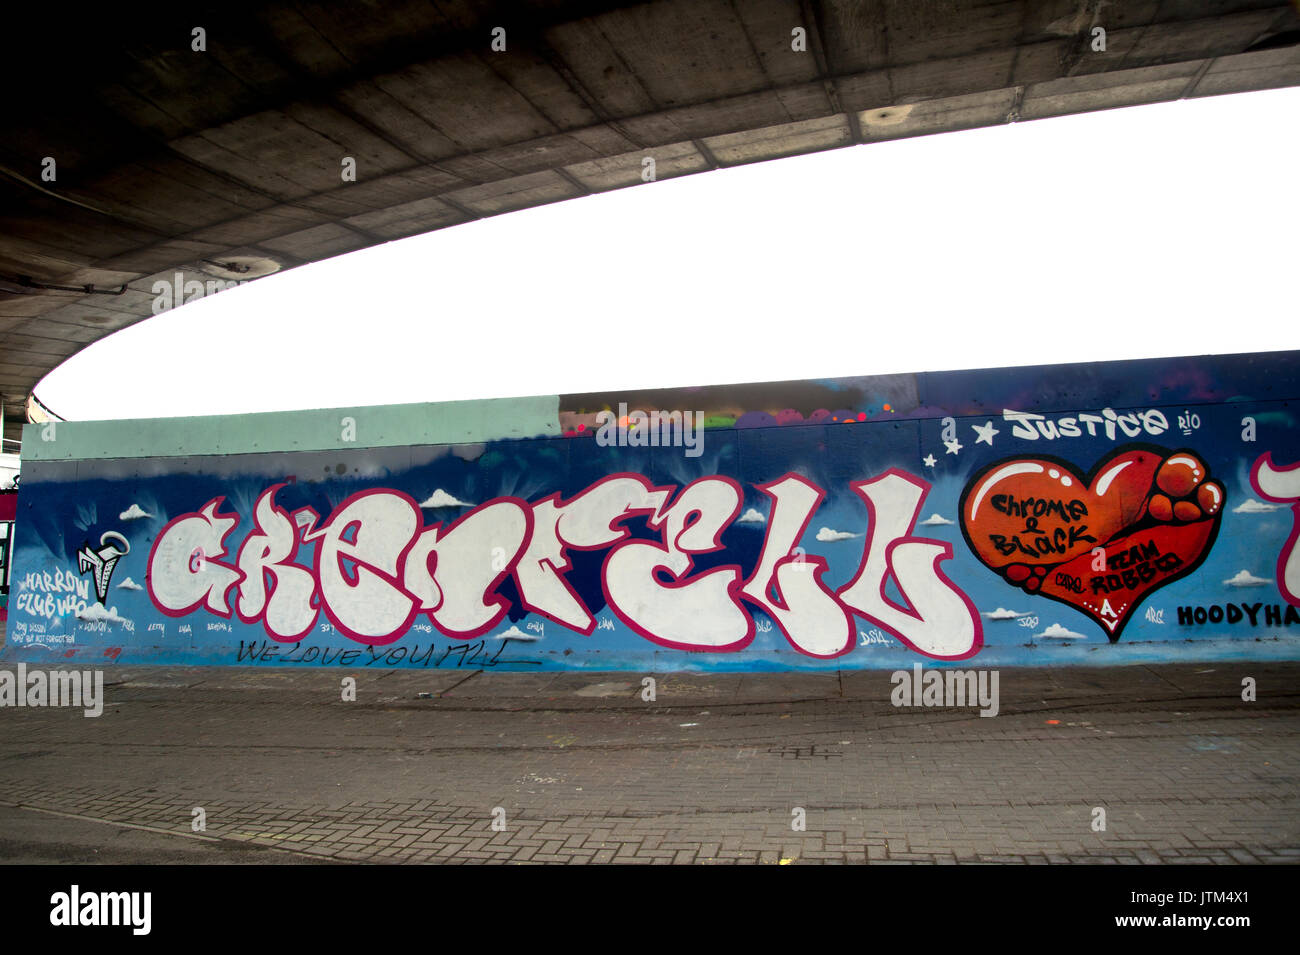 Grenfell Tower, West London. Aftermath of the tragedy. Mural under the Westway motorway painted by members of the local youth club. - Stock Image